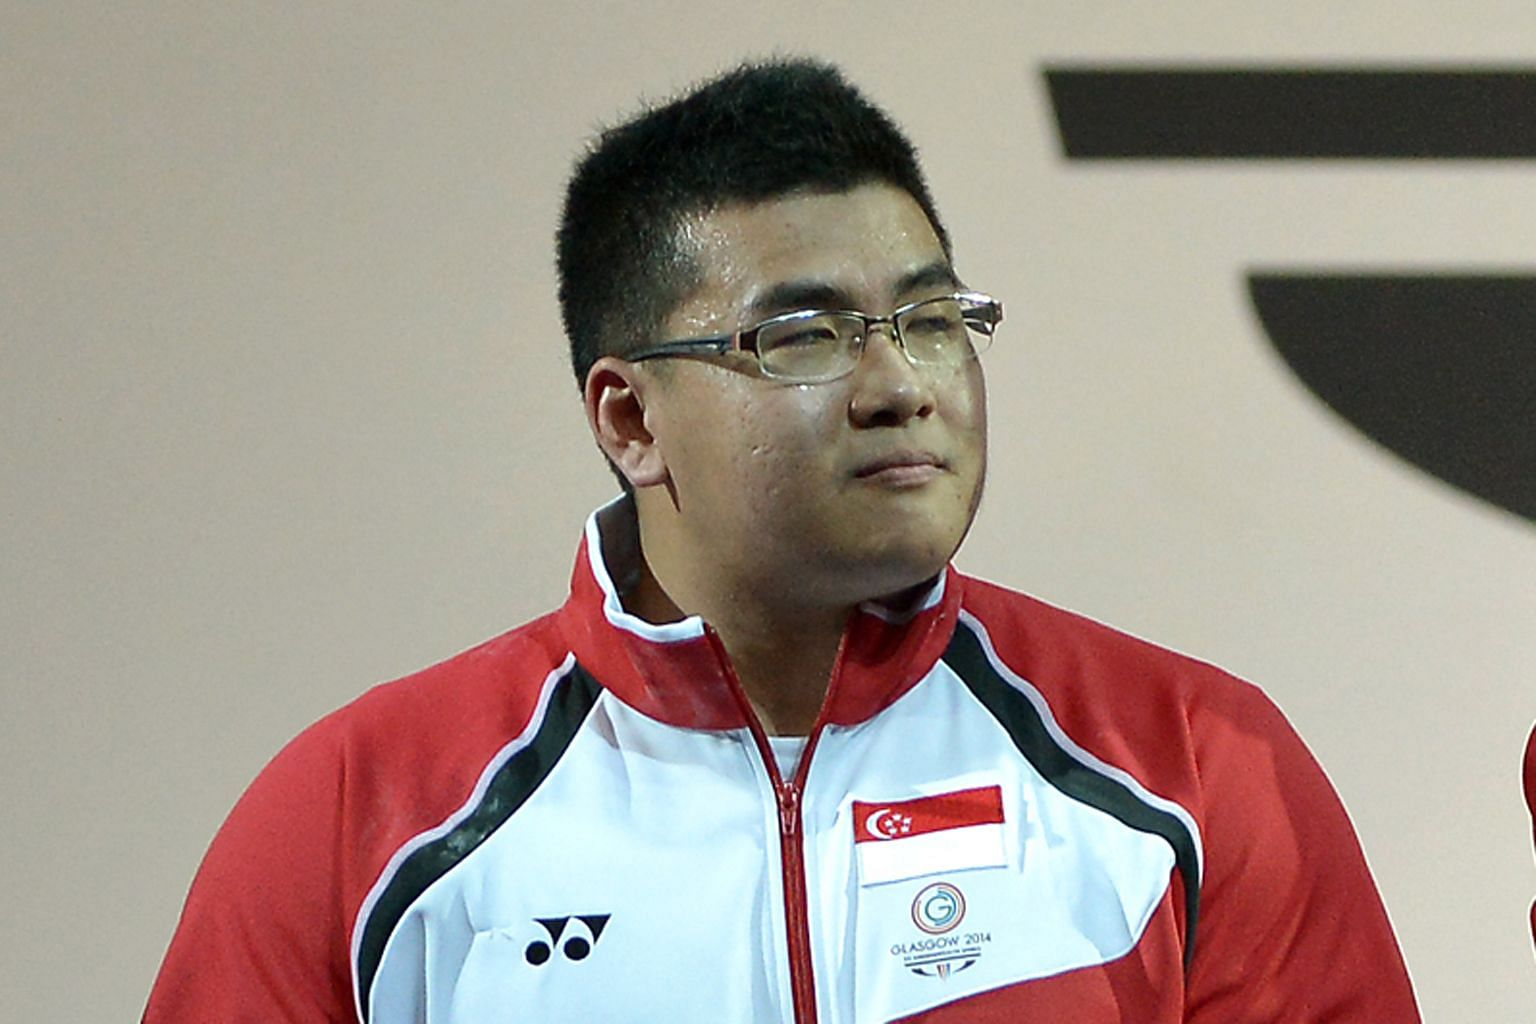 Scott Wong broke his own snatch, clean & jerk and total records and is targeting a podium finish at the next Commonwealth Games.